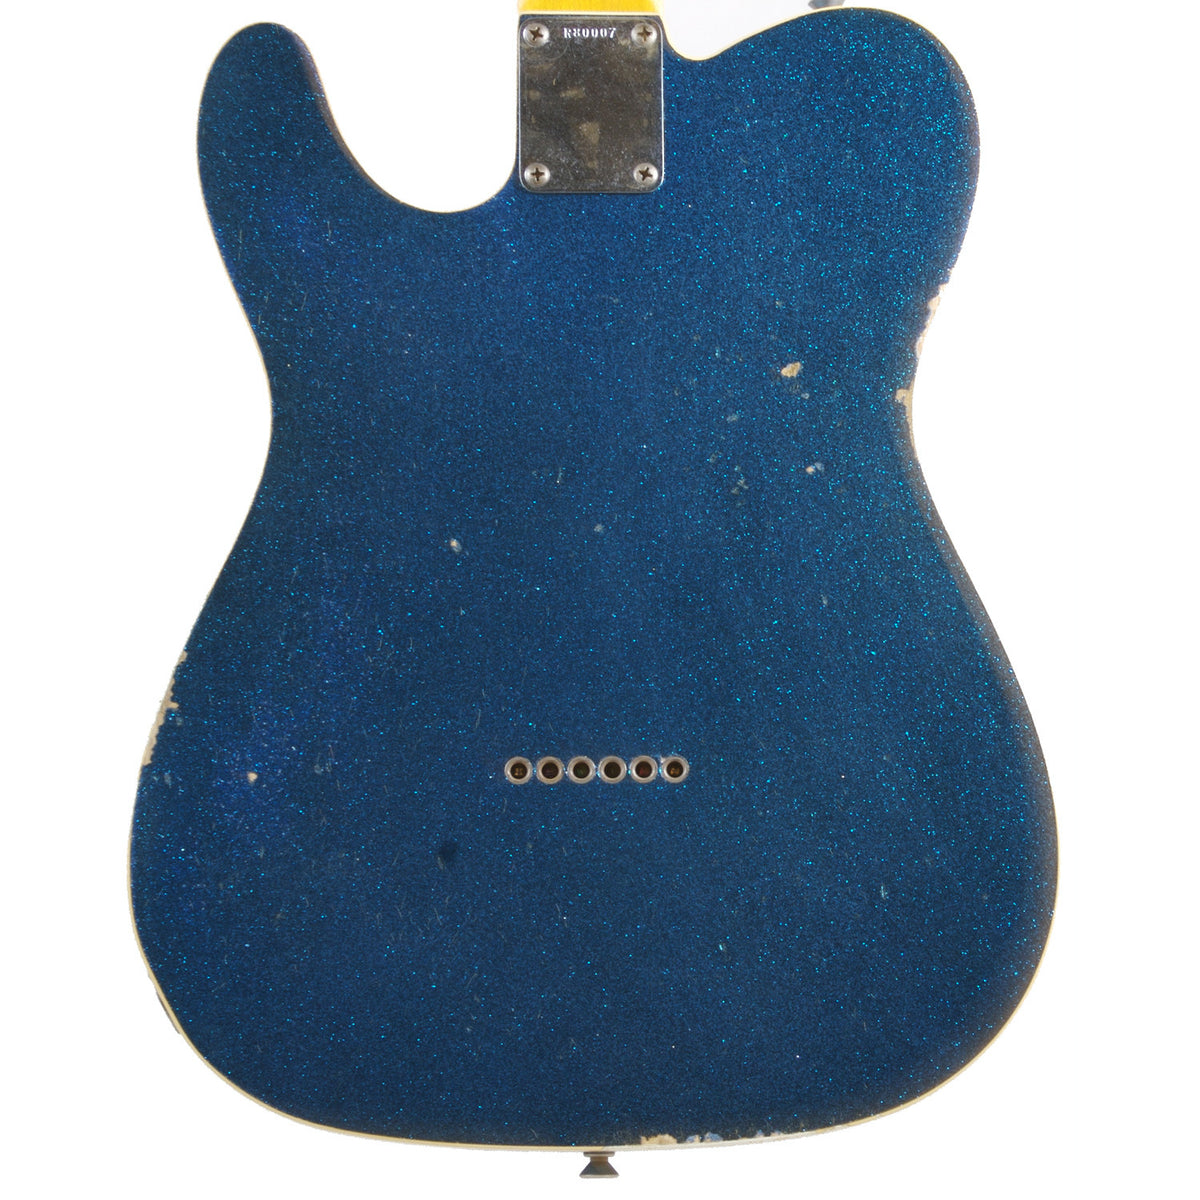 Fender Custom Shop '60 Telecaster Relic Blue Sparkle - Garrett Park Guitars  - 5